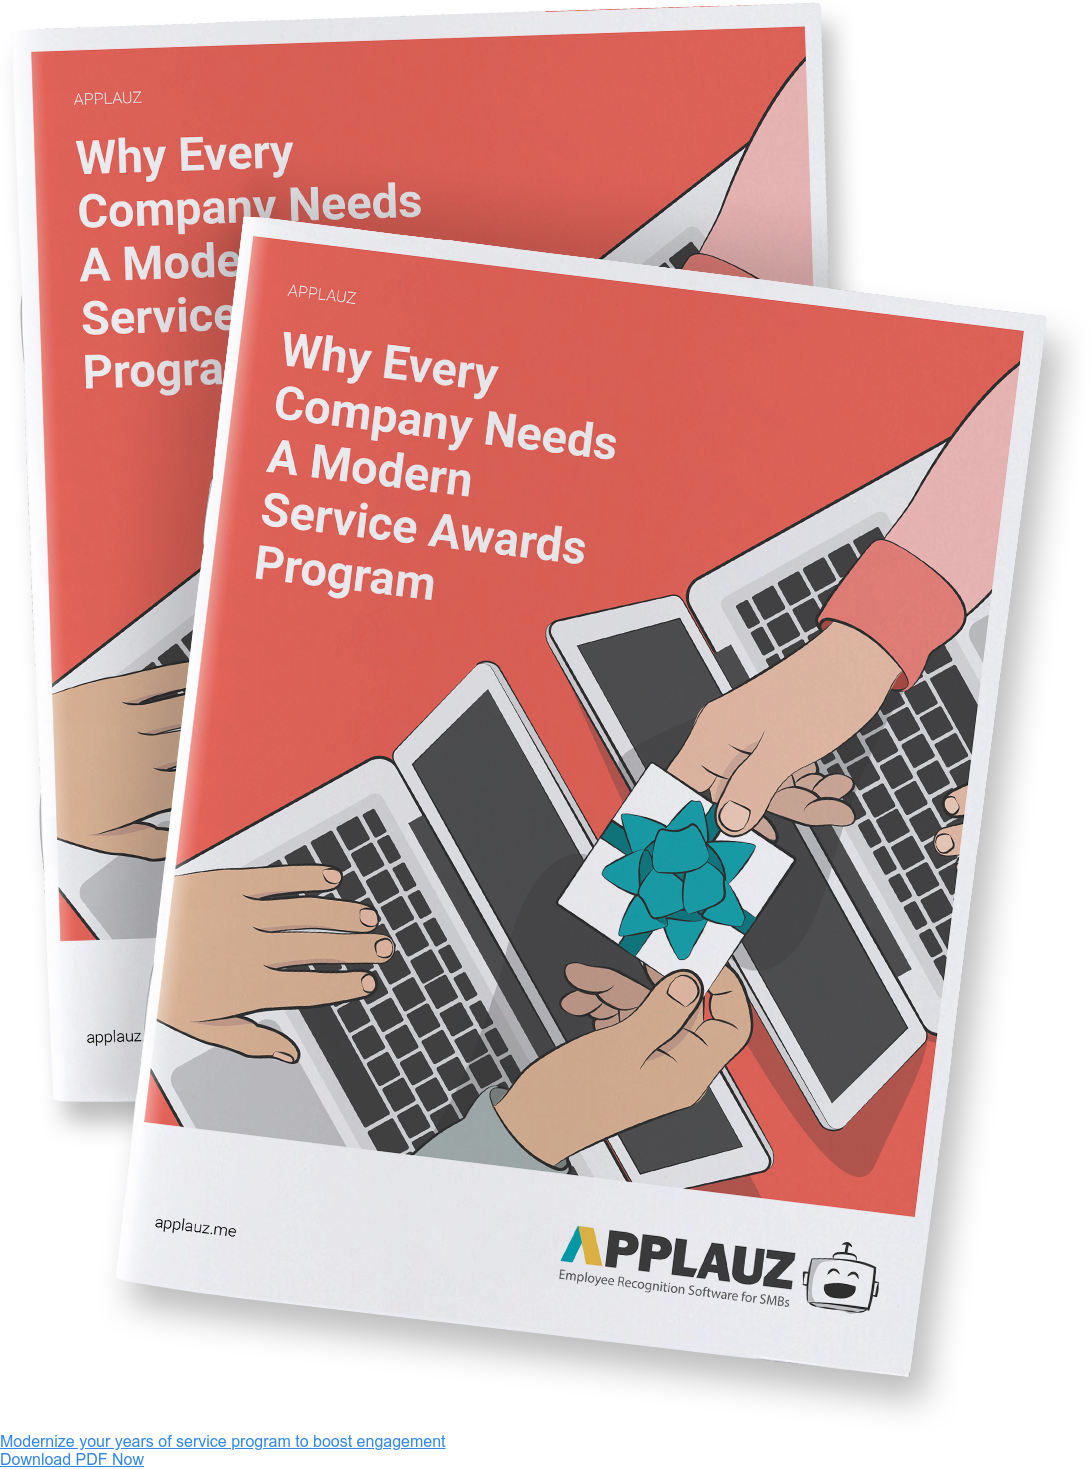 Modernize your years of service program to boost engagement - Download PDF Guide